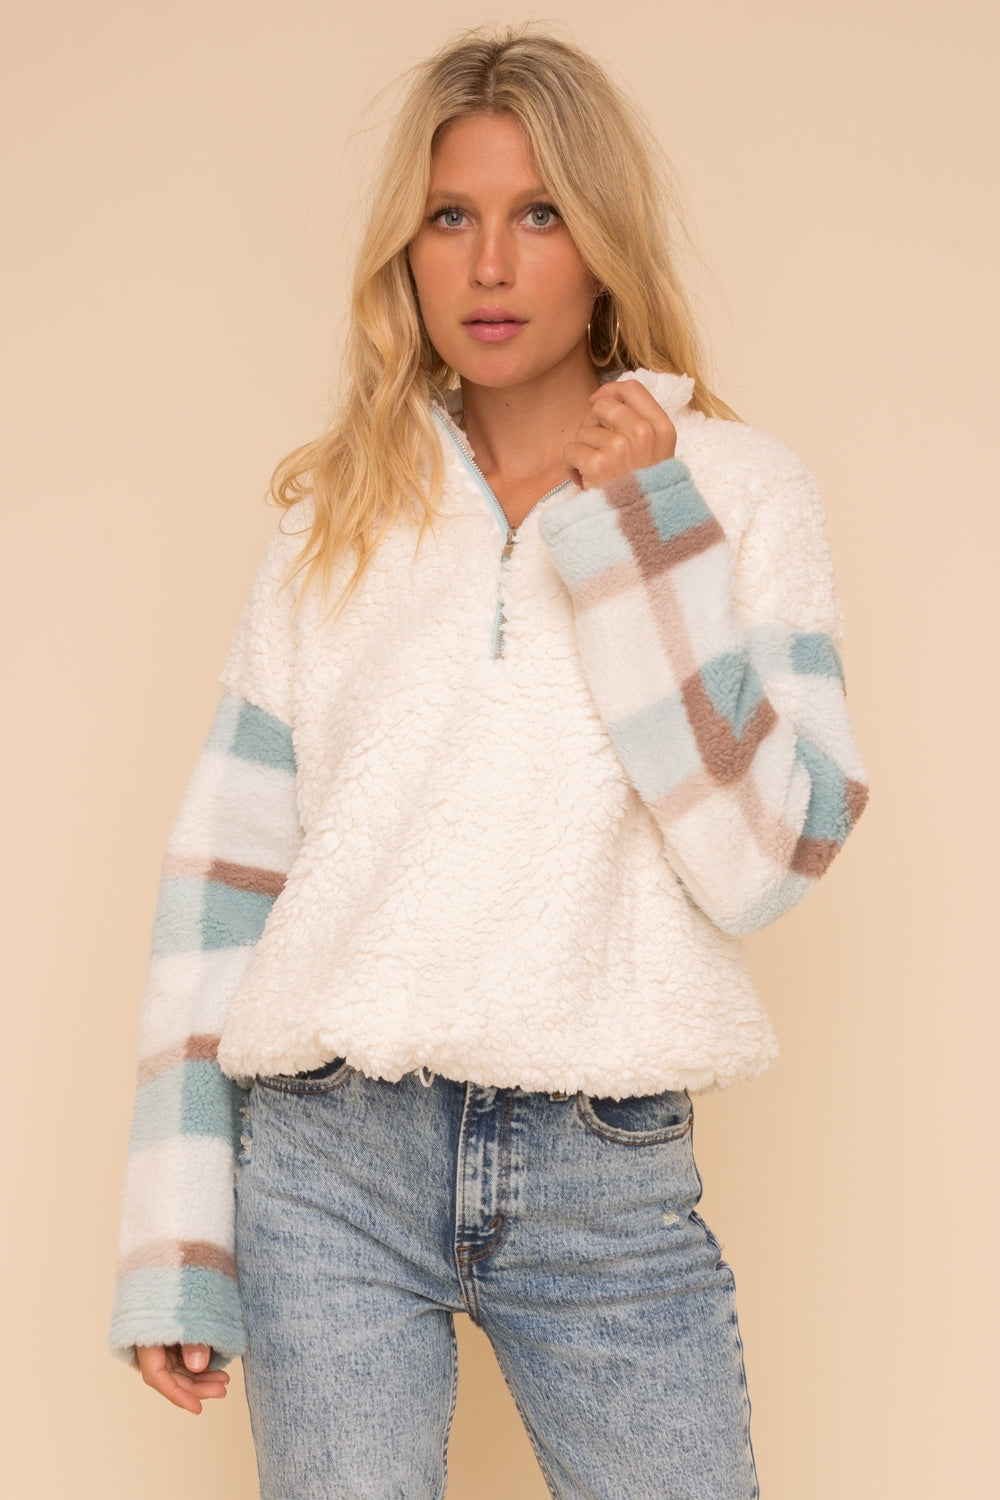 Plaid fuzzy pullover